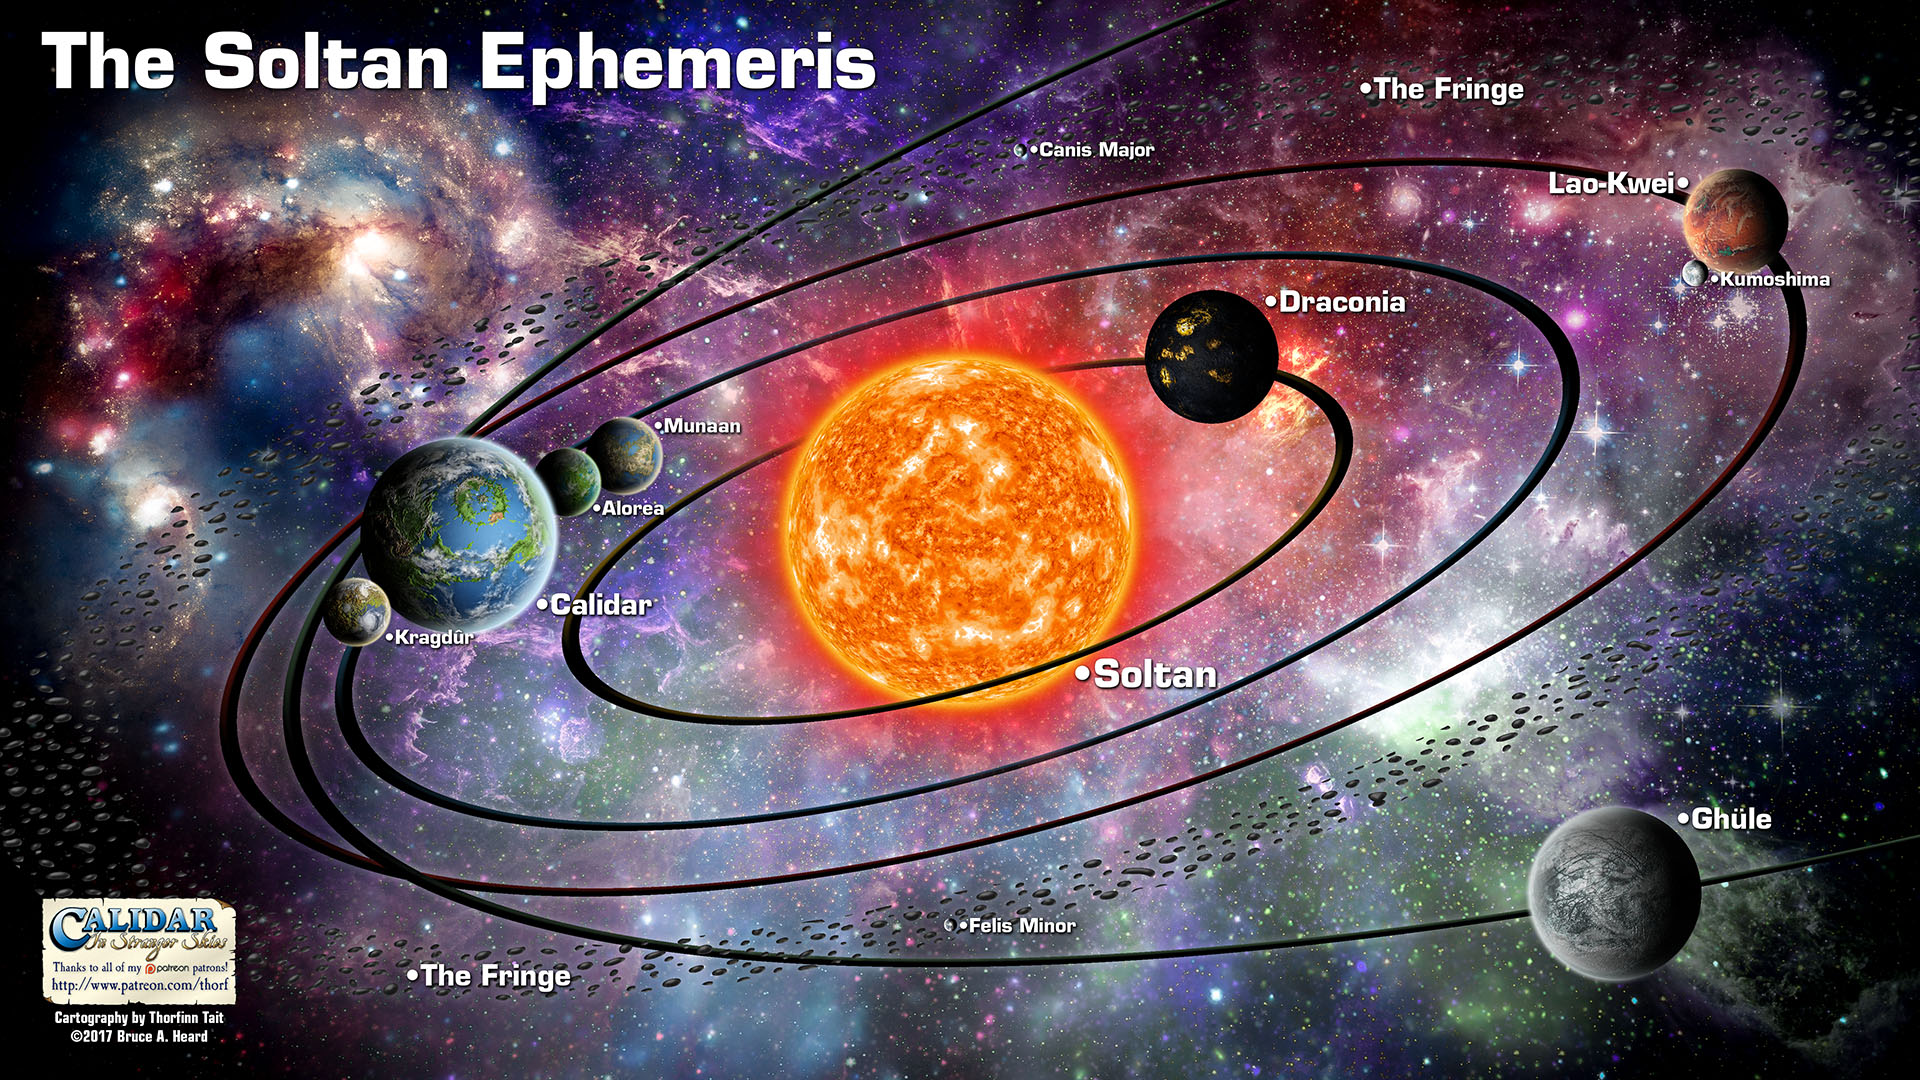 Soltan Ephemeris Illustration (Patreon)